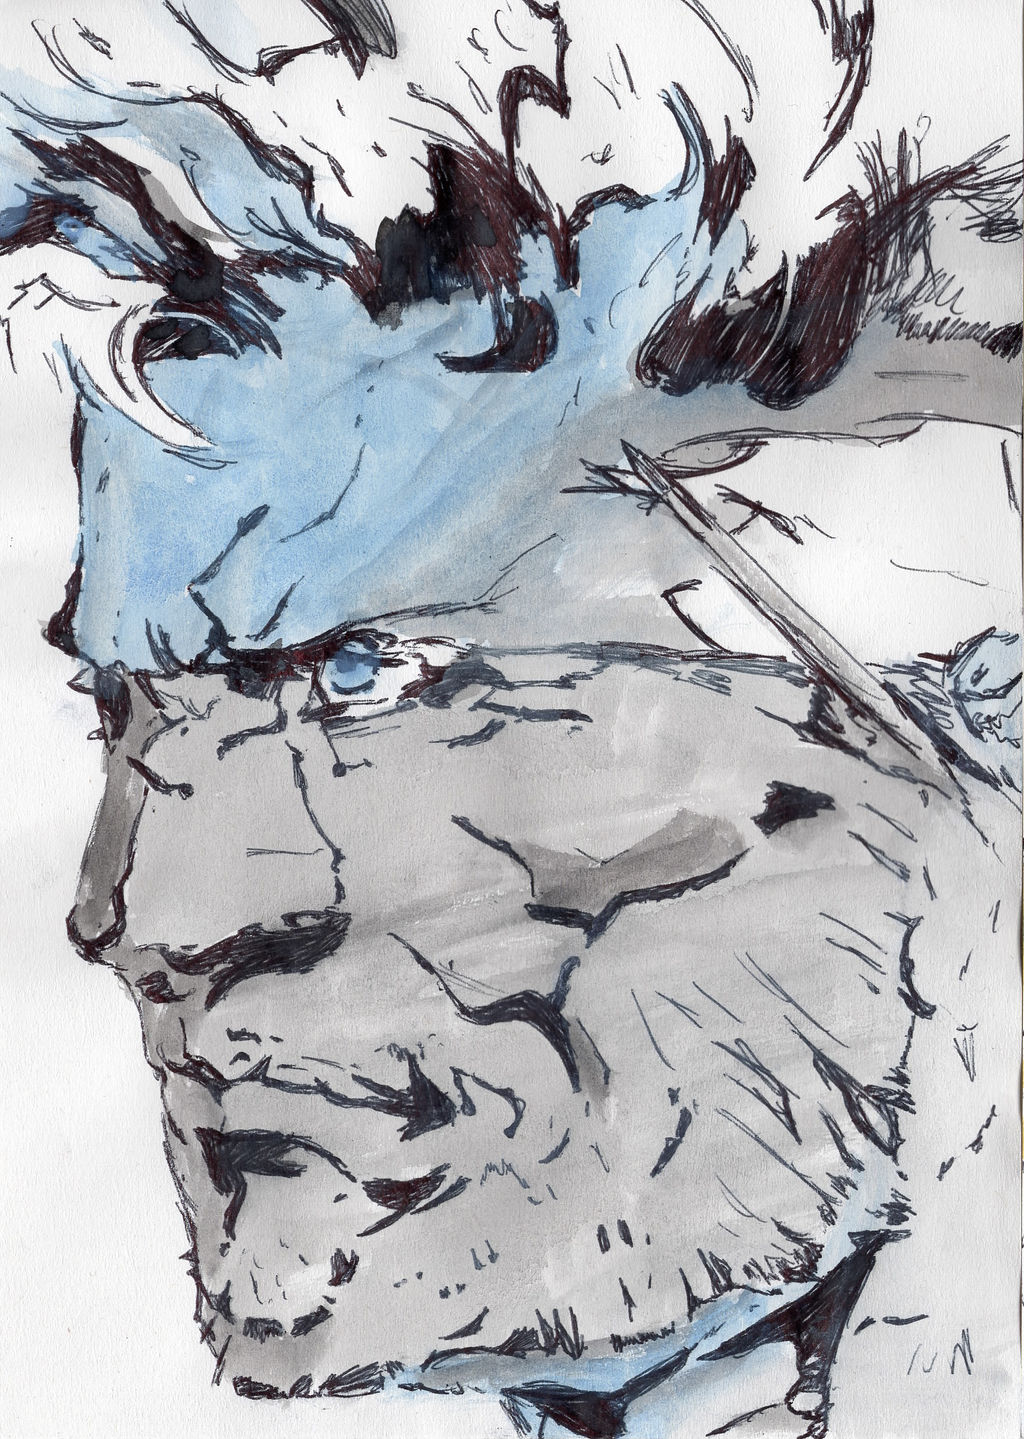 Solid Snake Metal Gear Solid 2 By Fanatictangents On